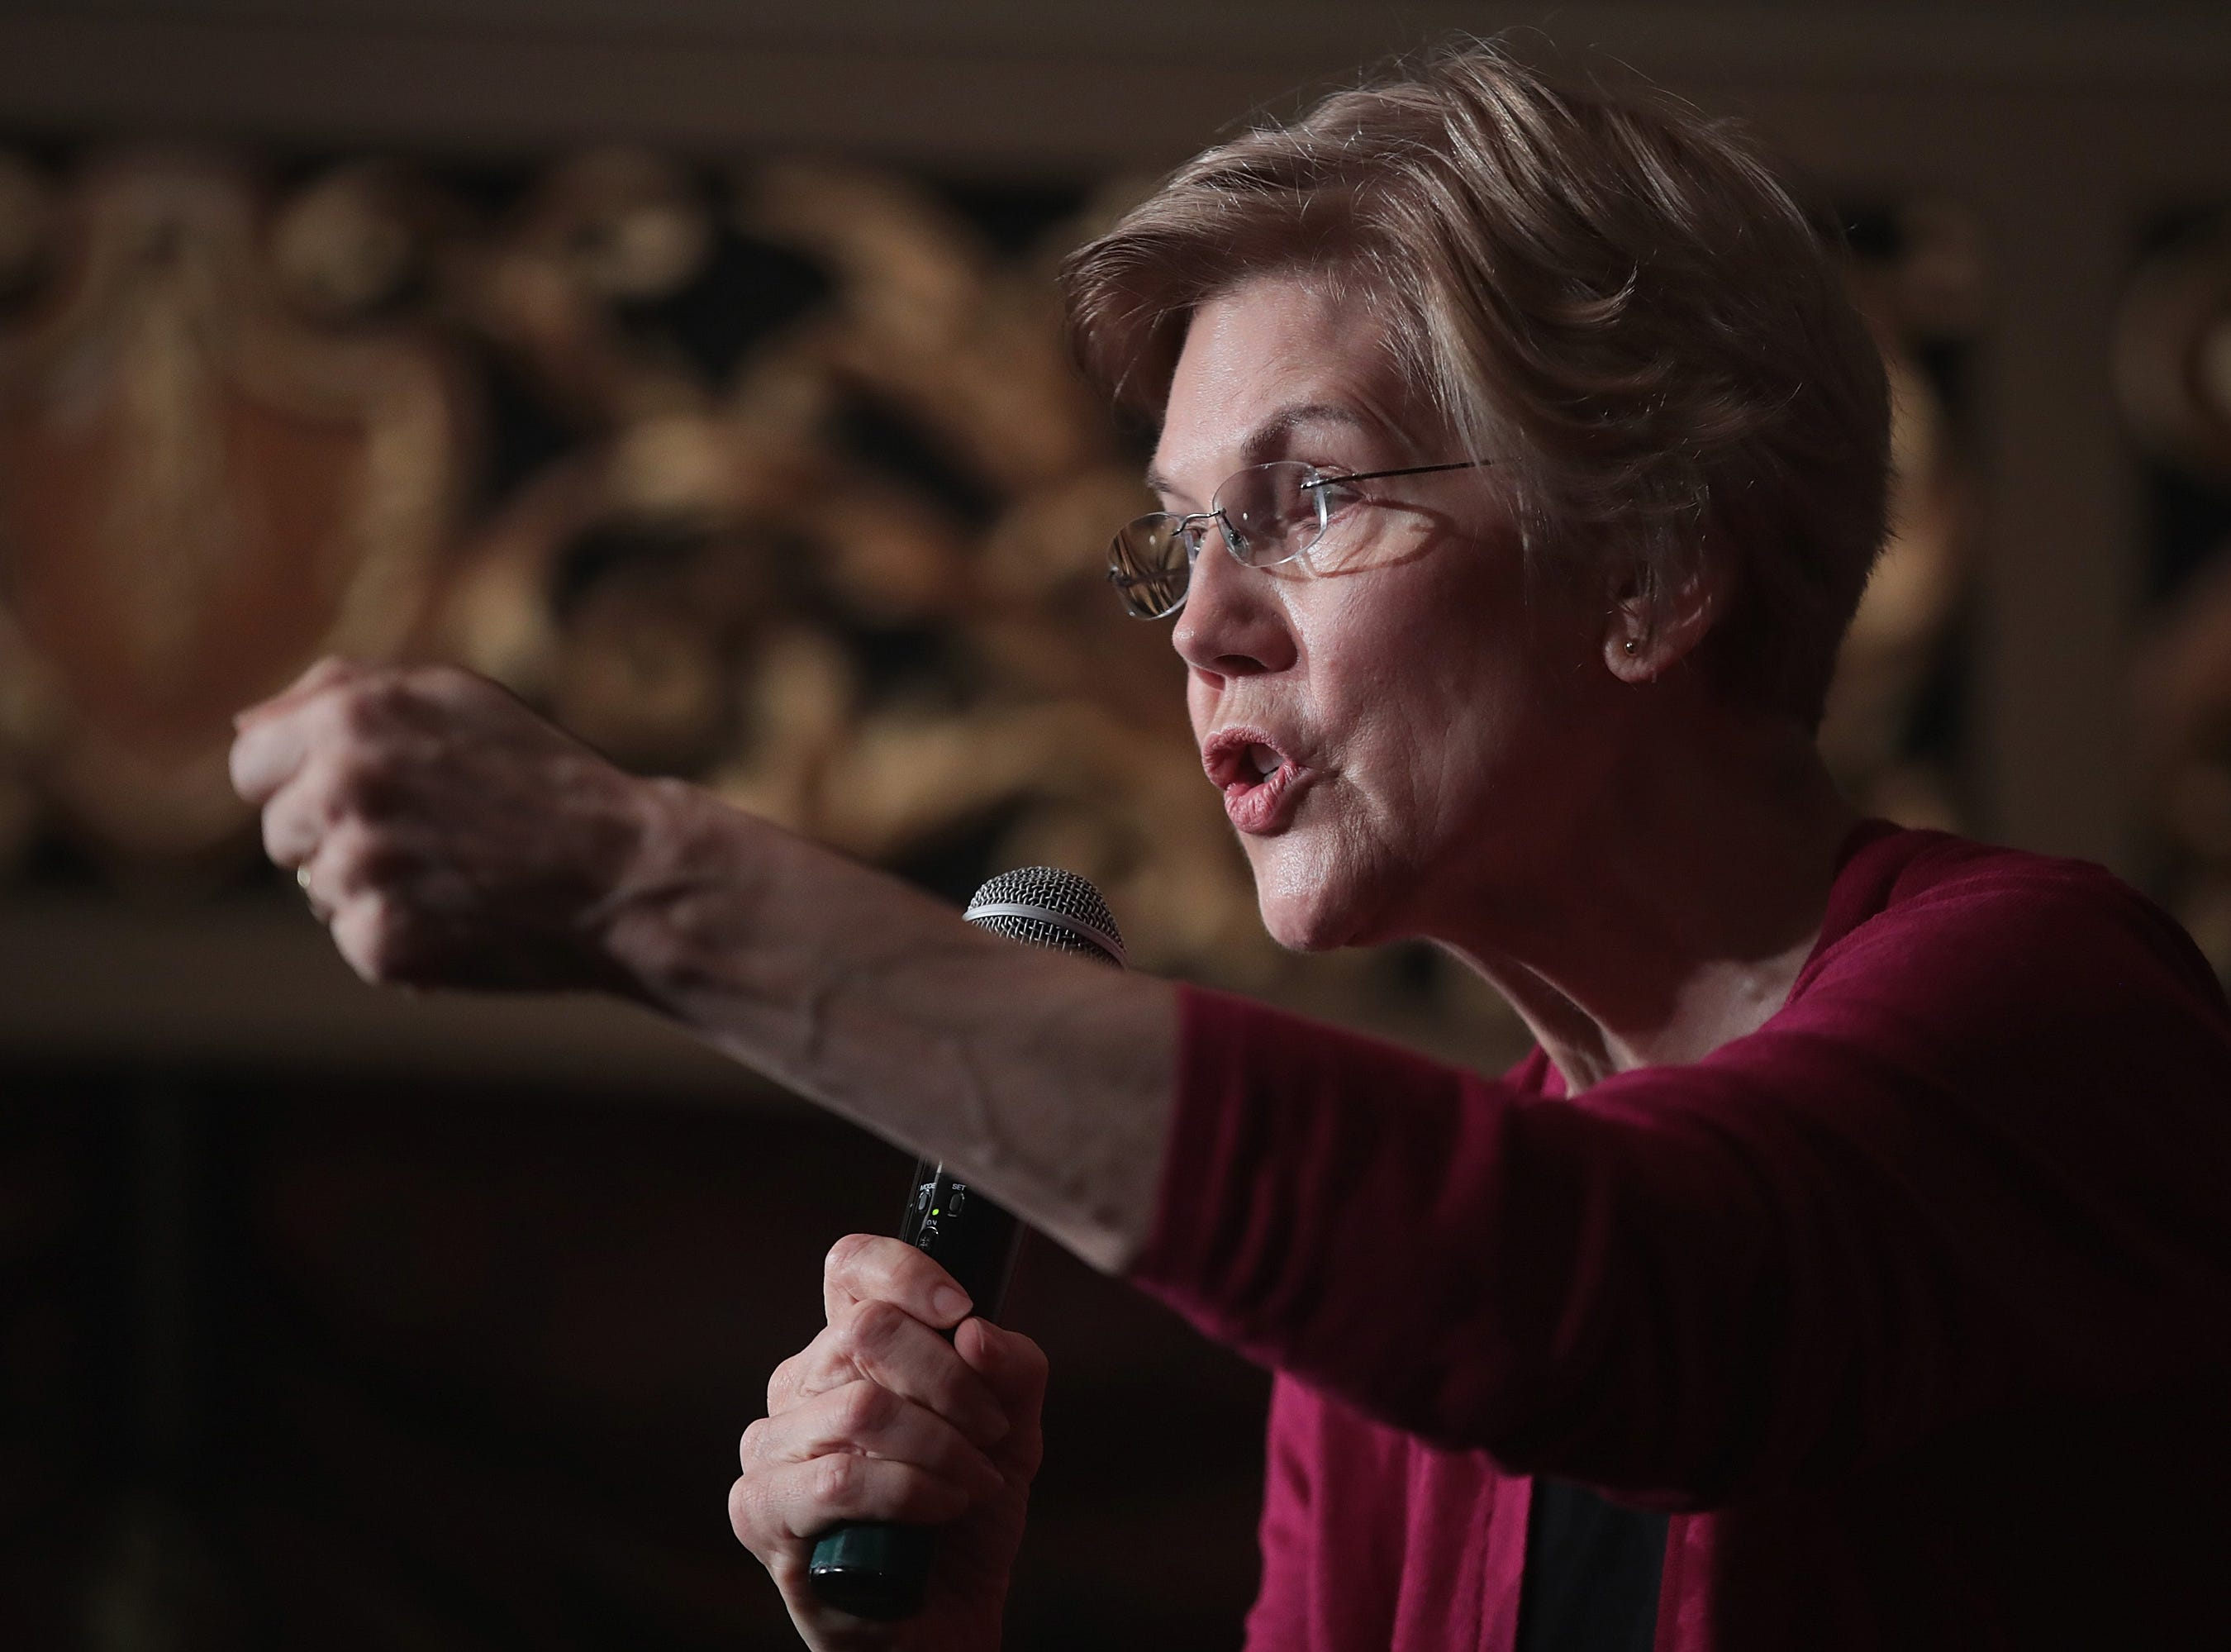 Sen. Elizabeth Warren (D-MA) speaks to guests during an organizing event at the Orpheum Theater on Jan. 5, 2019 in Sioux City, Iowa. Warren announced on December 31 that she was forming an exploratory committee for the 2020 presidential race.